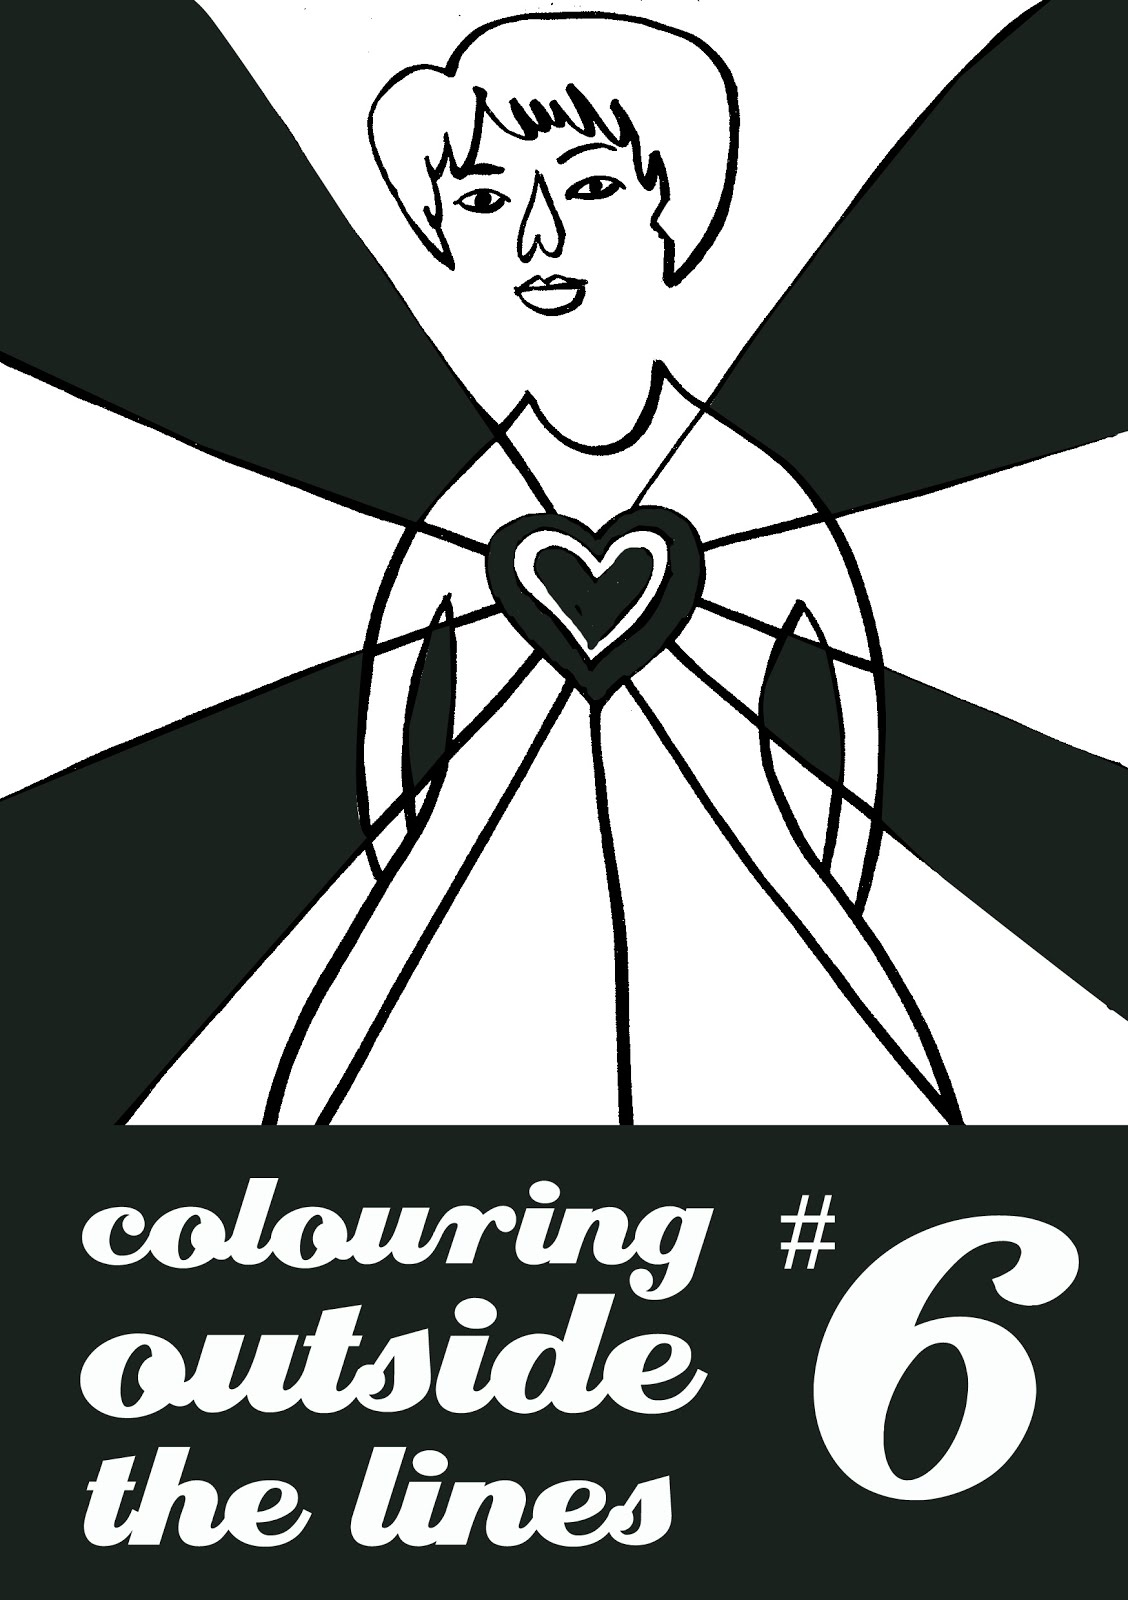 Color lines online strip game - But Colouring Outside The Lines Zine Issue 6 Will Be Out Shortly More News And Full Details Coming Soon